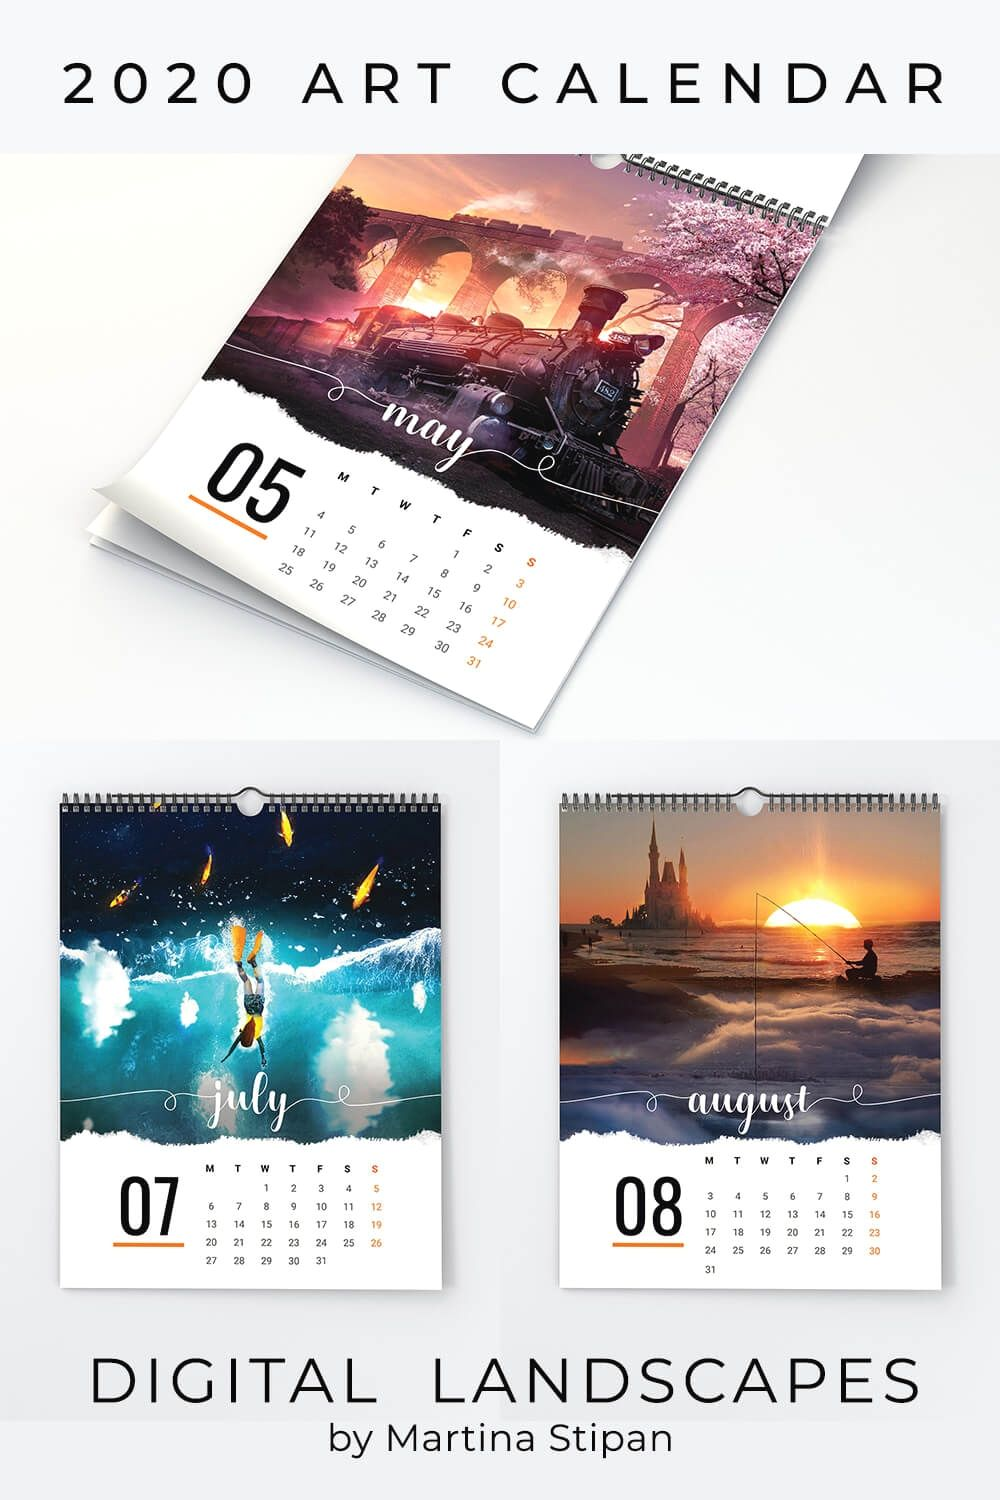 2020 Printable Calendar Template Add your own photos